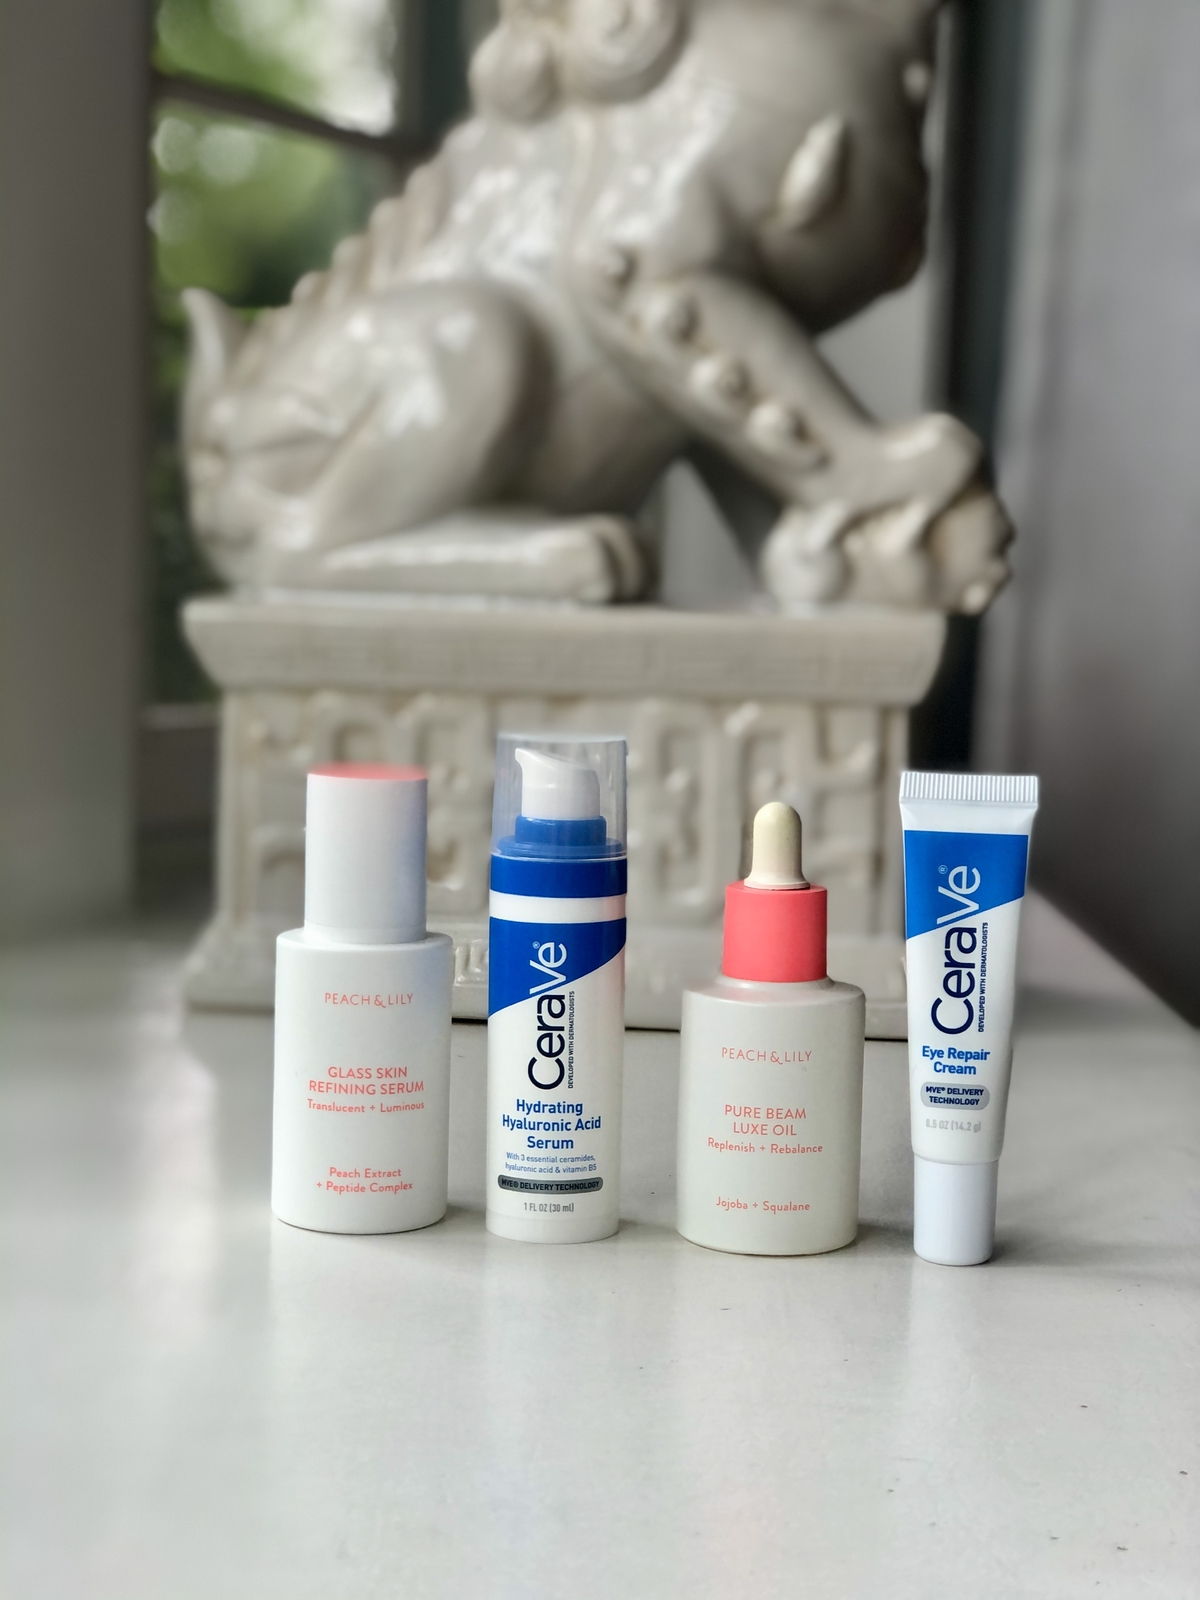 My current no-moisturizer summer skincare routine starring Peach & Lily and CeraVe!